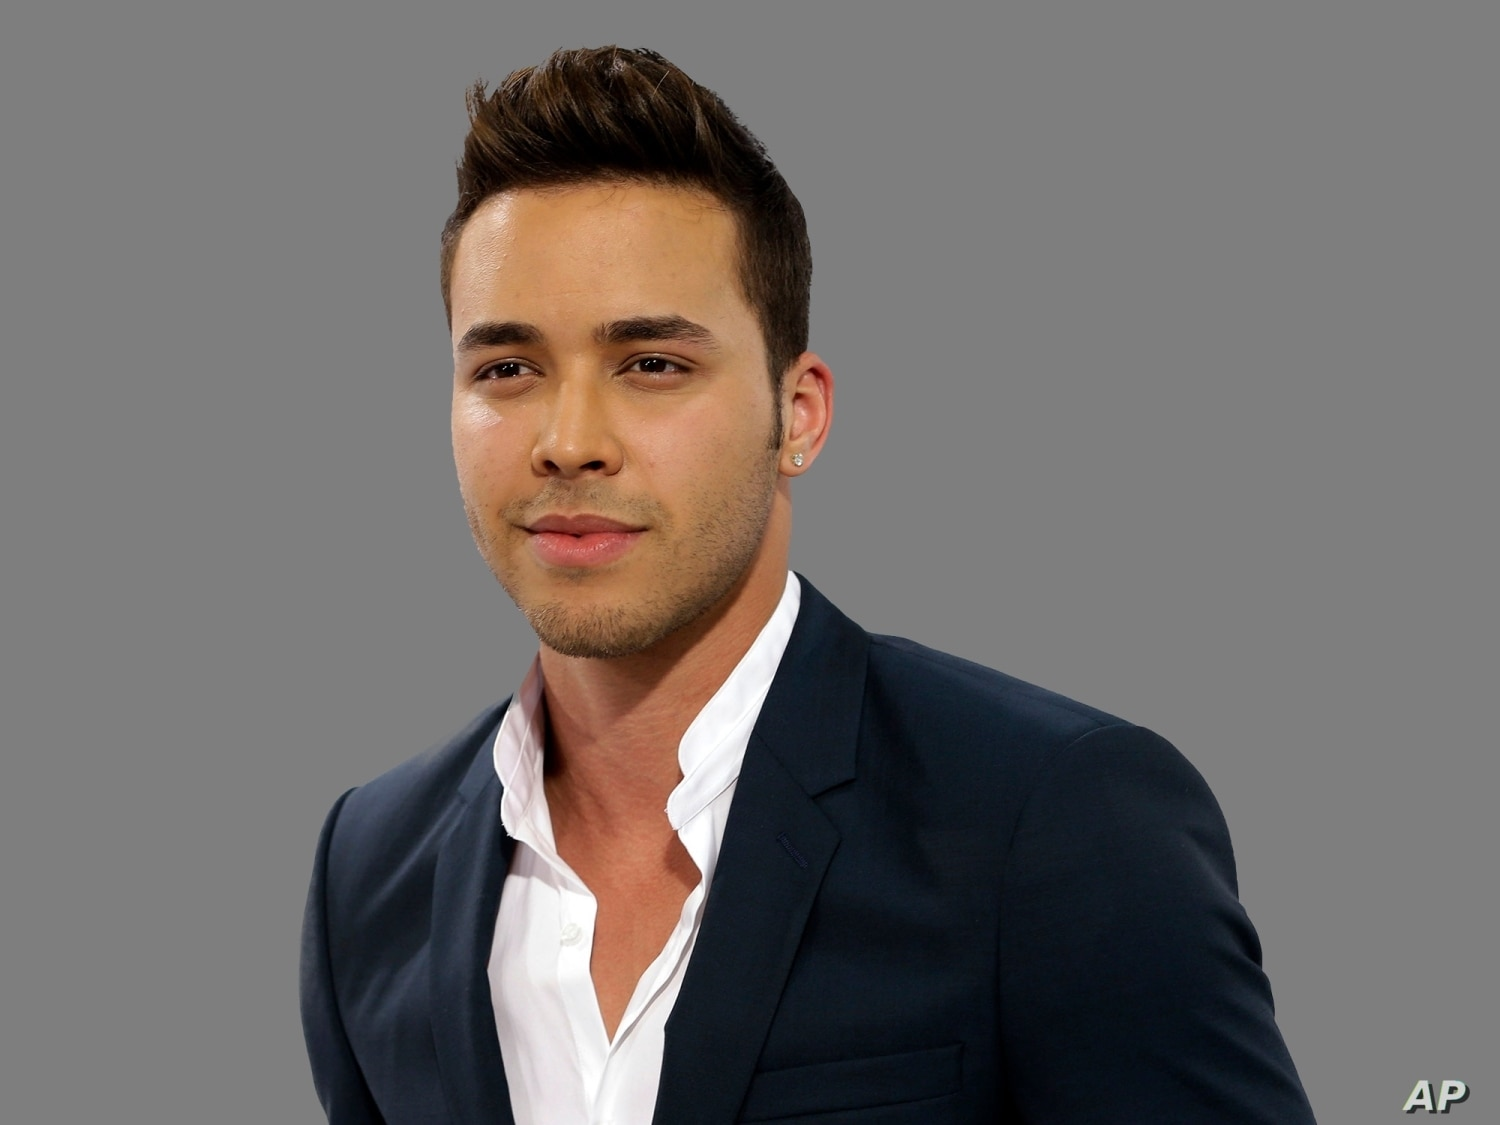 The 32-year old son of father (?) and mother(?) Prince Royce in 2021 photo. Prince Royce earned a  million dollar salary - leaving the net worth at  million in 2021